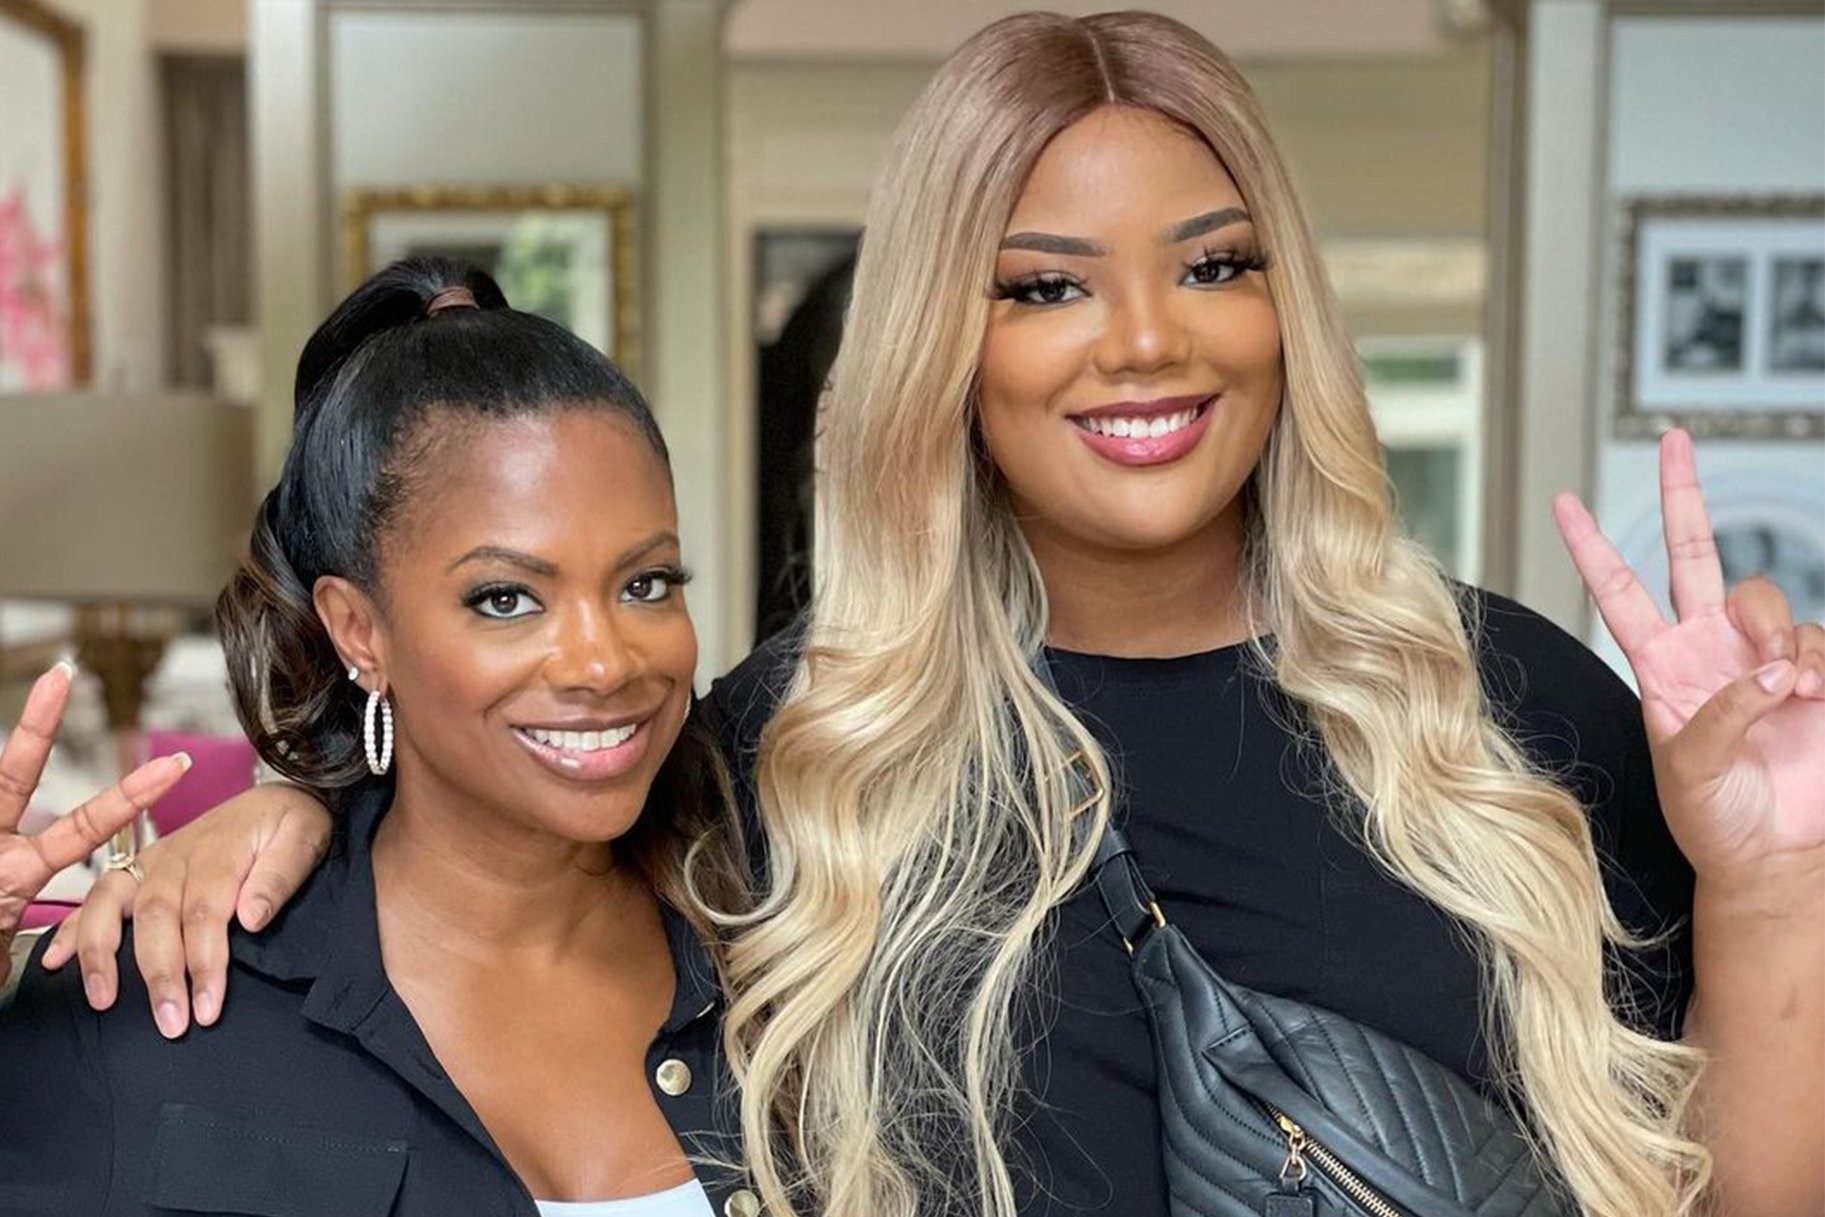 Kandi Burruss Shares An Exciting Video Featuring Riley Burruss And Fans Are Amazed By Her Beauty